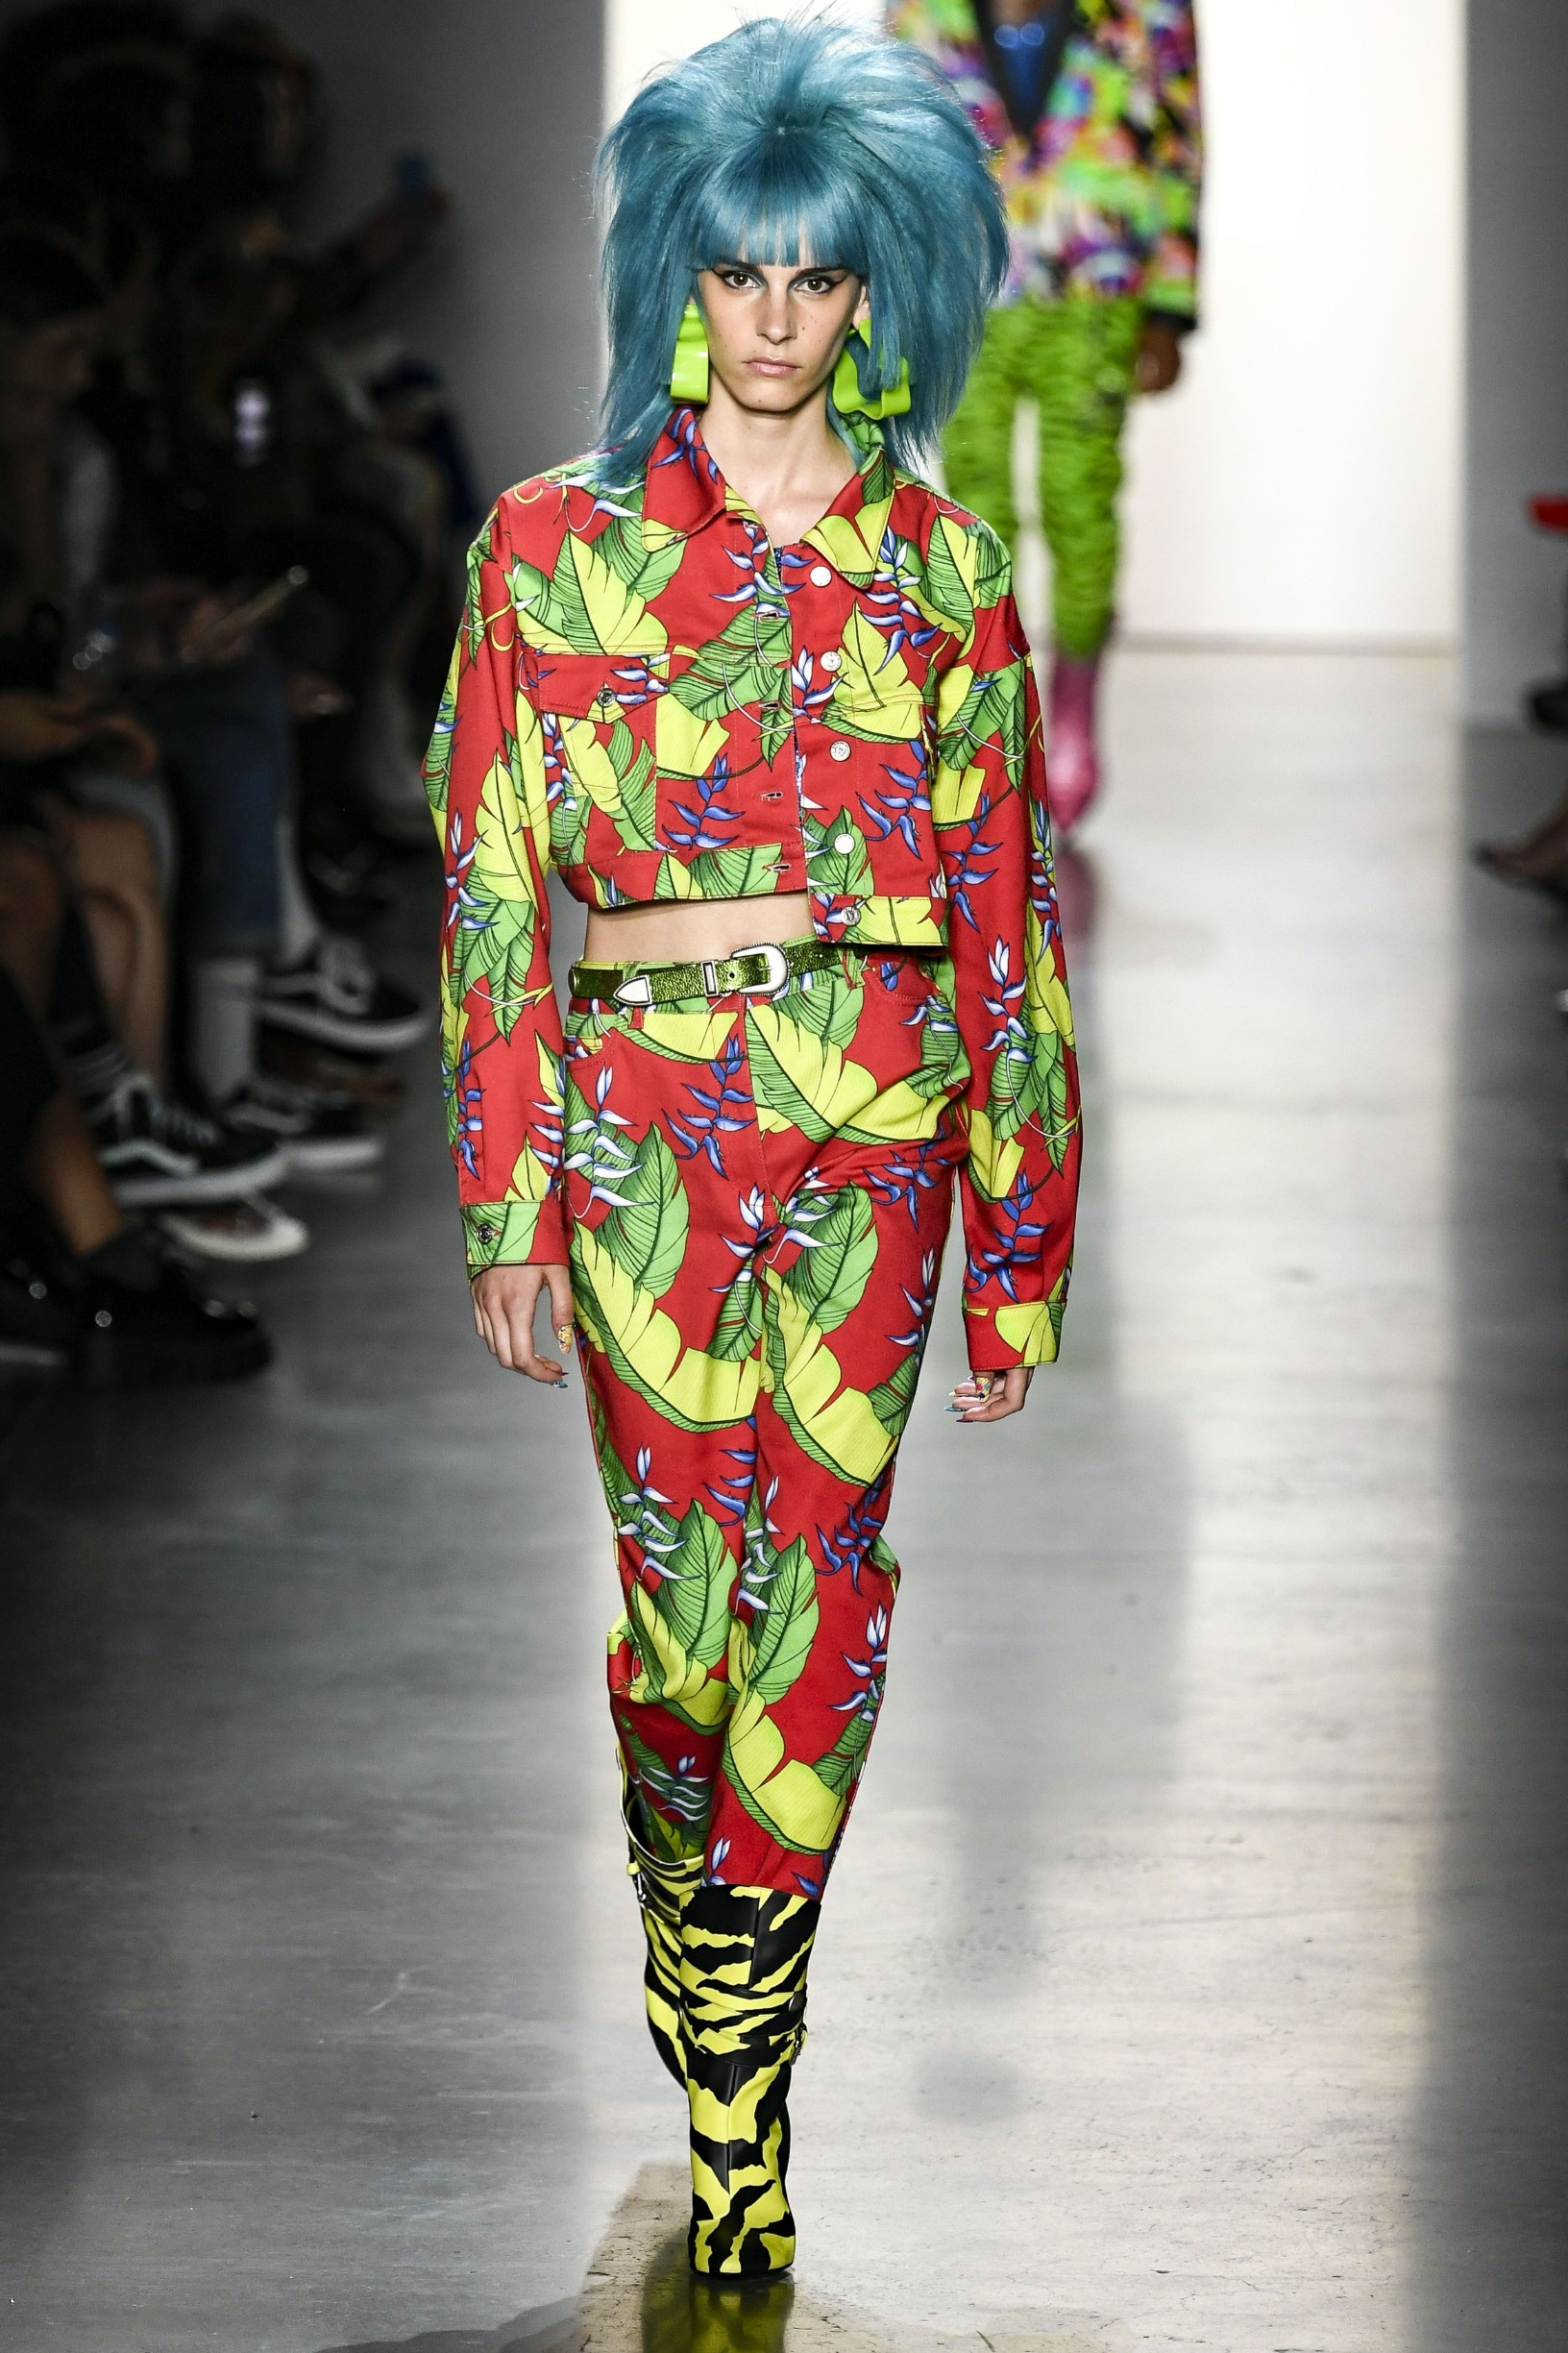 A Model wearing an outfit from the women's ready to wear collections, summer 2020, original creation, during the Fashion Week in New York, from the house of Jeremy Scott//Z-PIXEL-FORMULA_A_118/1909070621/Credit:Pixelformula/SIPA/1909071022, Image: 469566501, License: Rights-managed, Restrictions: , Model Release: no, Credit line: Profimedia, Sipa Press